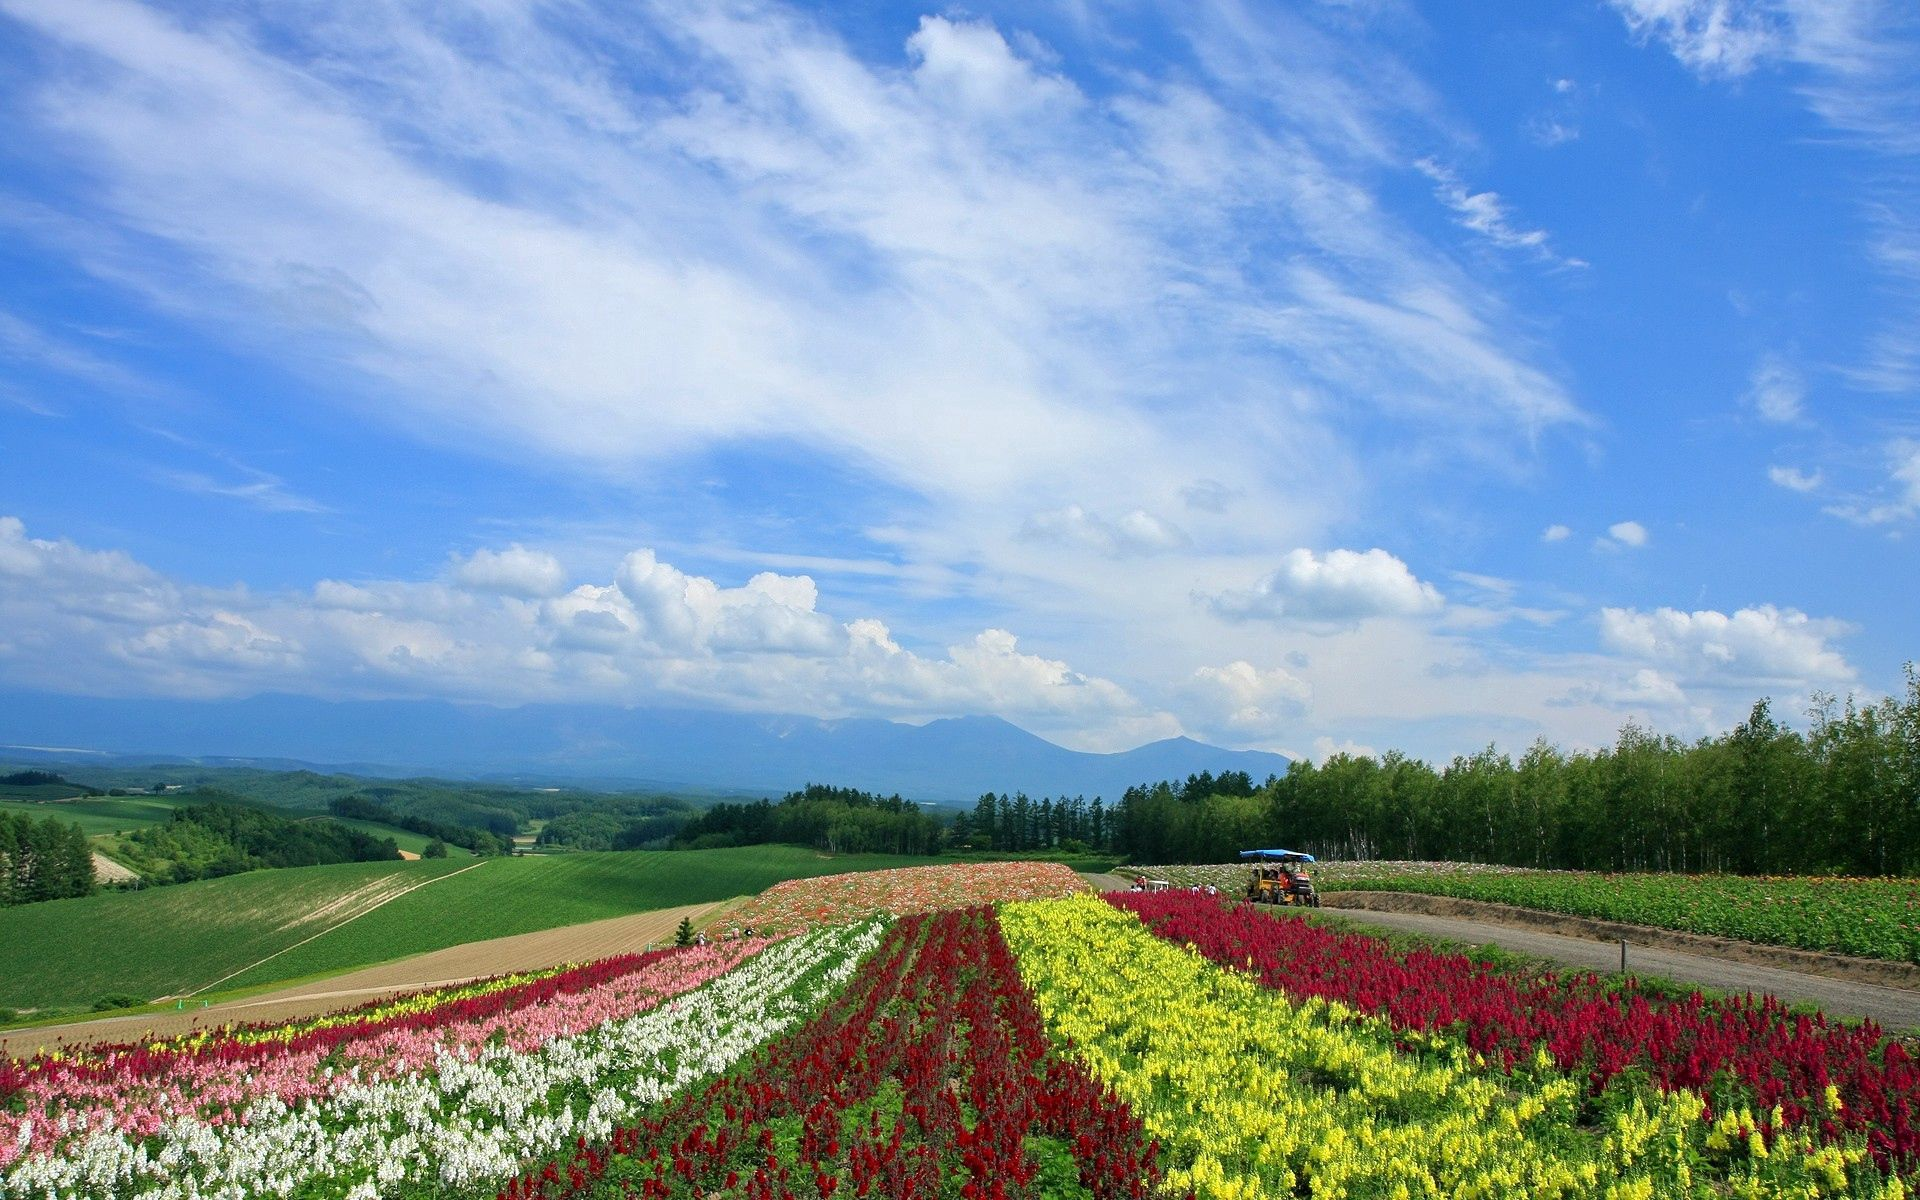 141013 download wallpaper Nature, Flowers, Poppies, Field, Japan, Plantation, Rows, Ranks screensavers and pictures for free